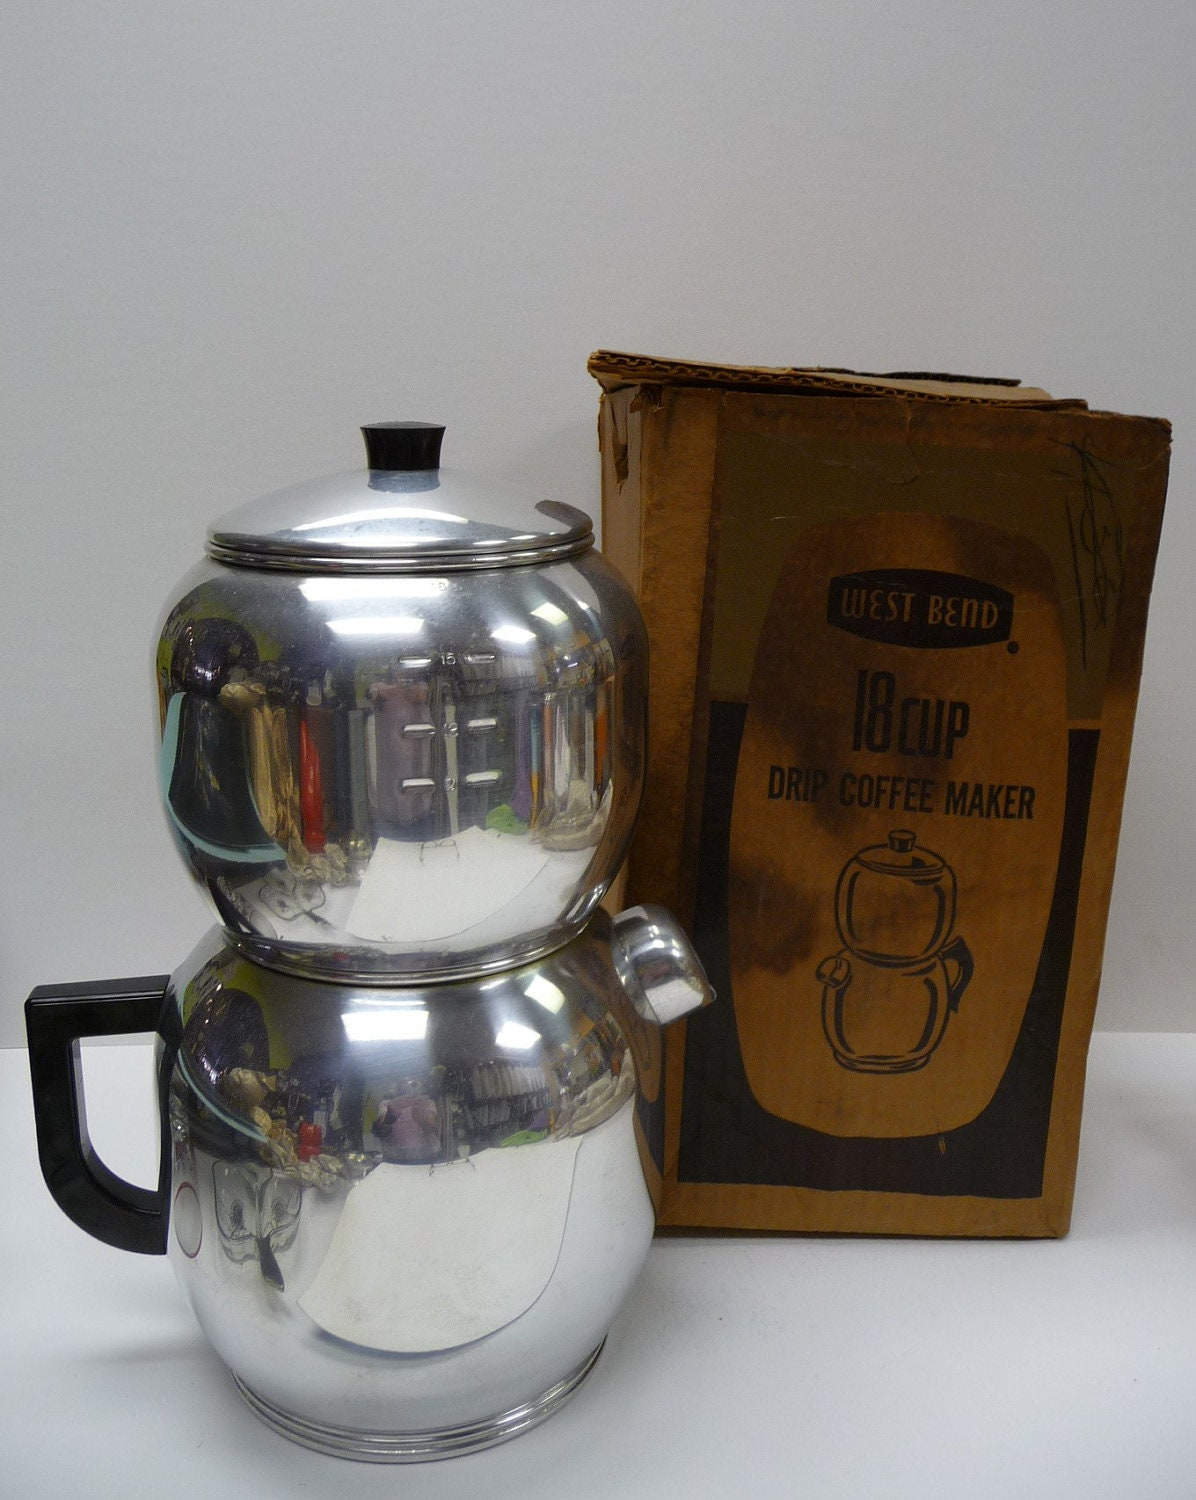 Vintage Drip Coffee Maker West Bend in Box 18 cup Aluminum